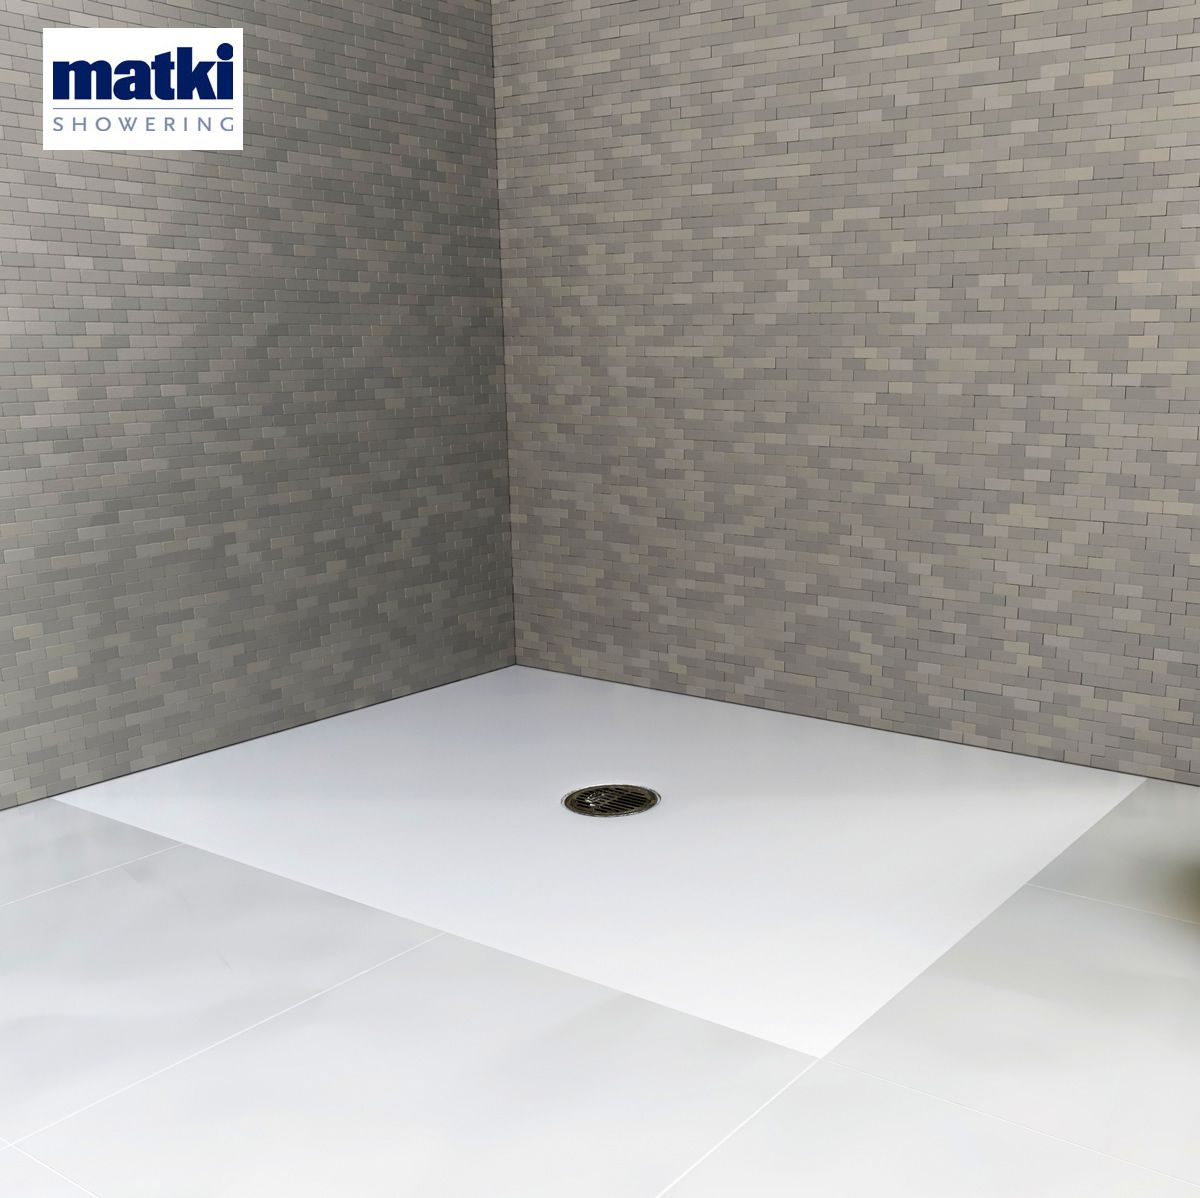 matki continental 30 slimline shower tray